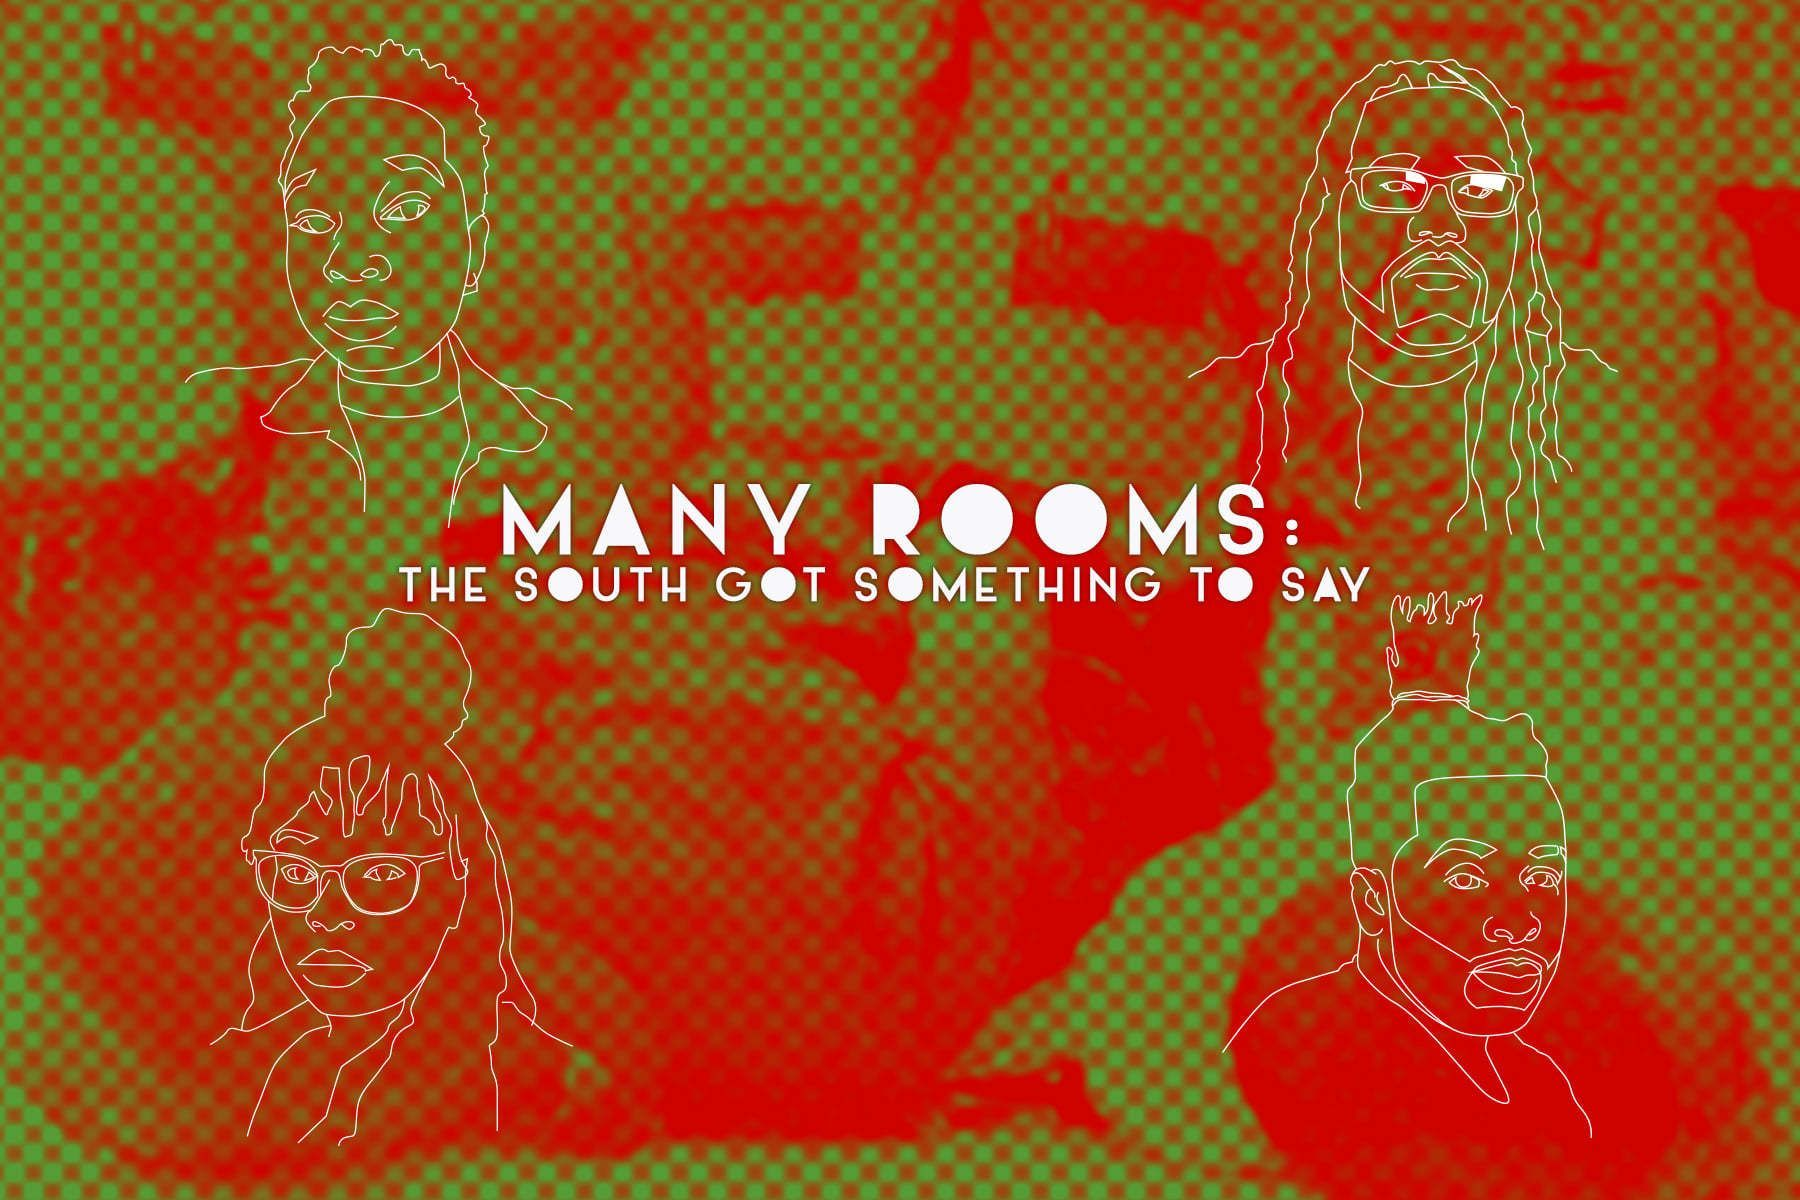 Many Rooms: The South Got Something to Say